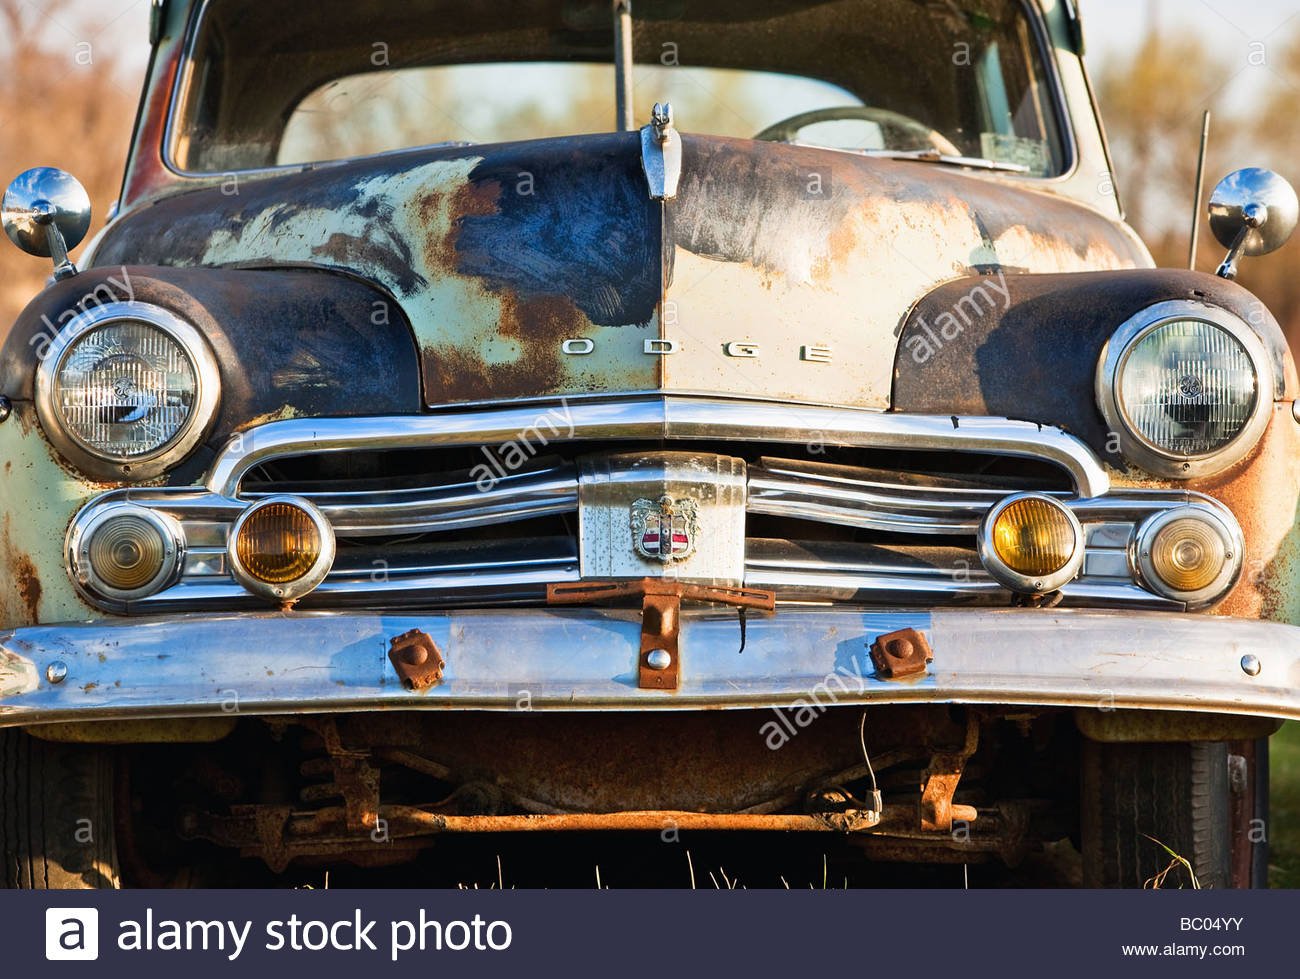 Classic Dodge Car Stock Photos & Classic Dodge Car Stock Images - Alamy